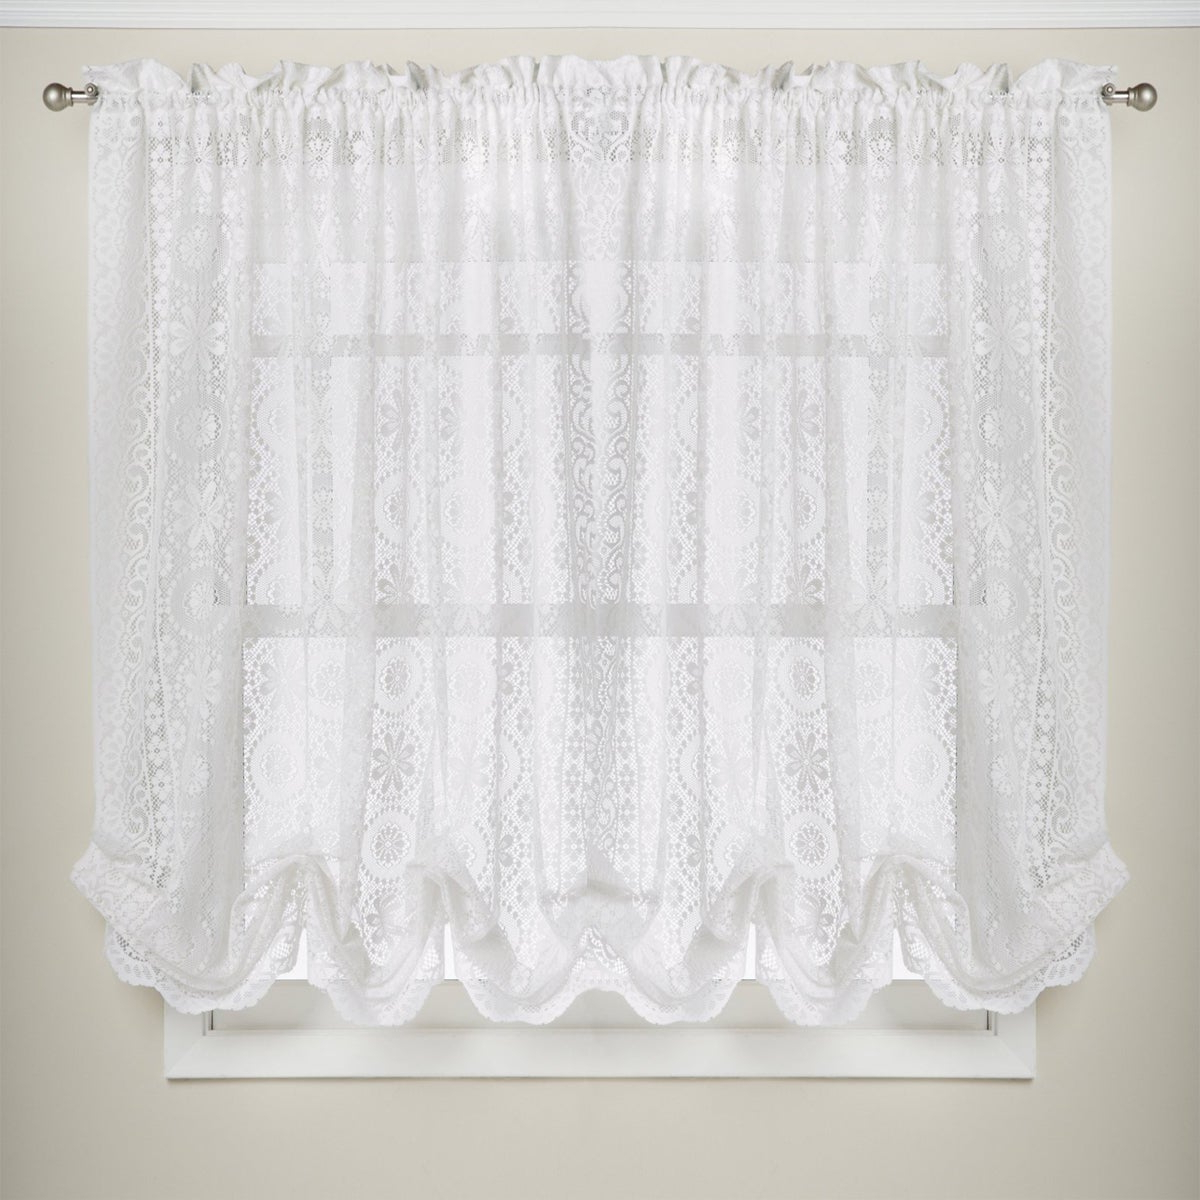 Recent White Lace Luxurious Old World Style Kitchen Curtains Tiers, Shade Or Valances Regarding Luxurious Old World Style Lace Window Curtain Panels (View 9 of 20)